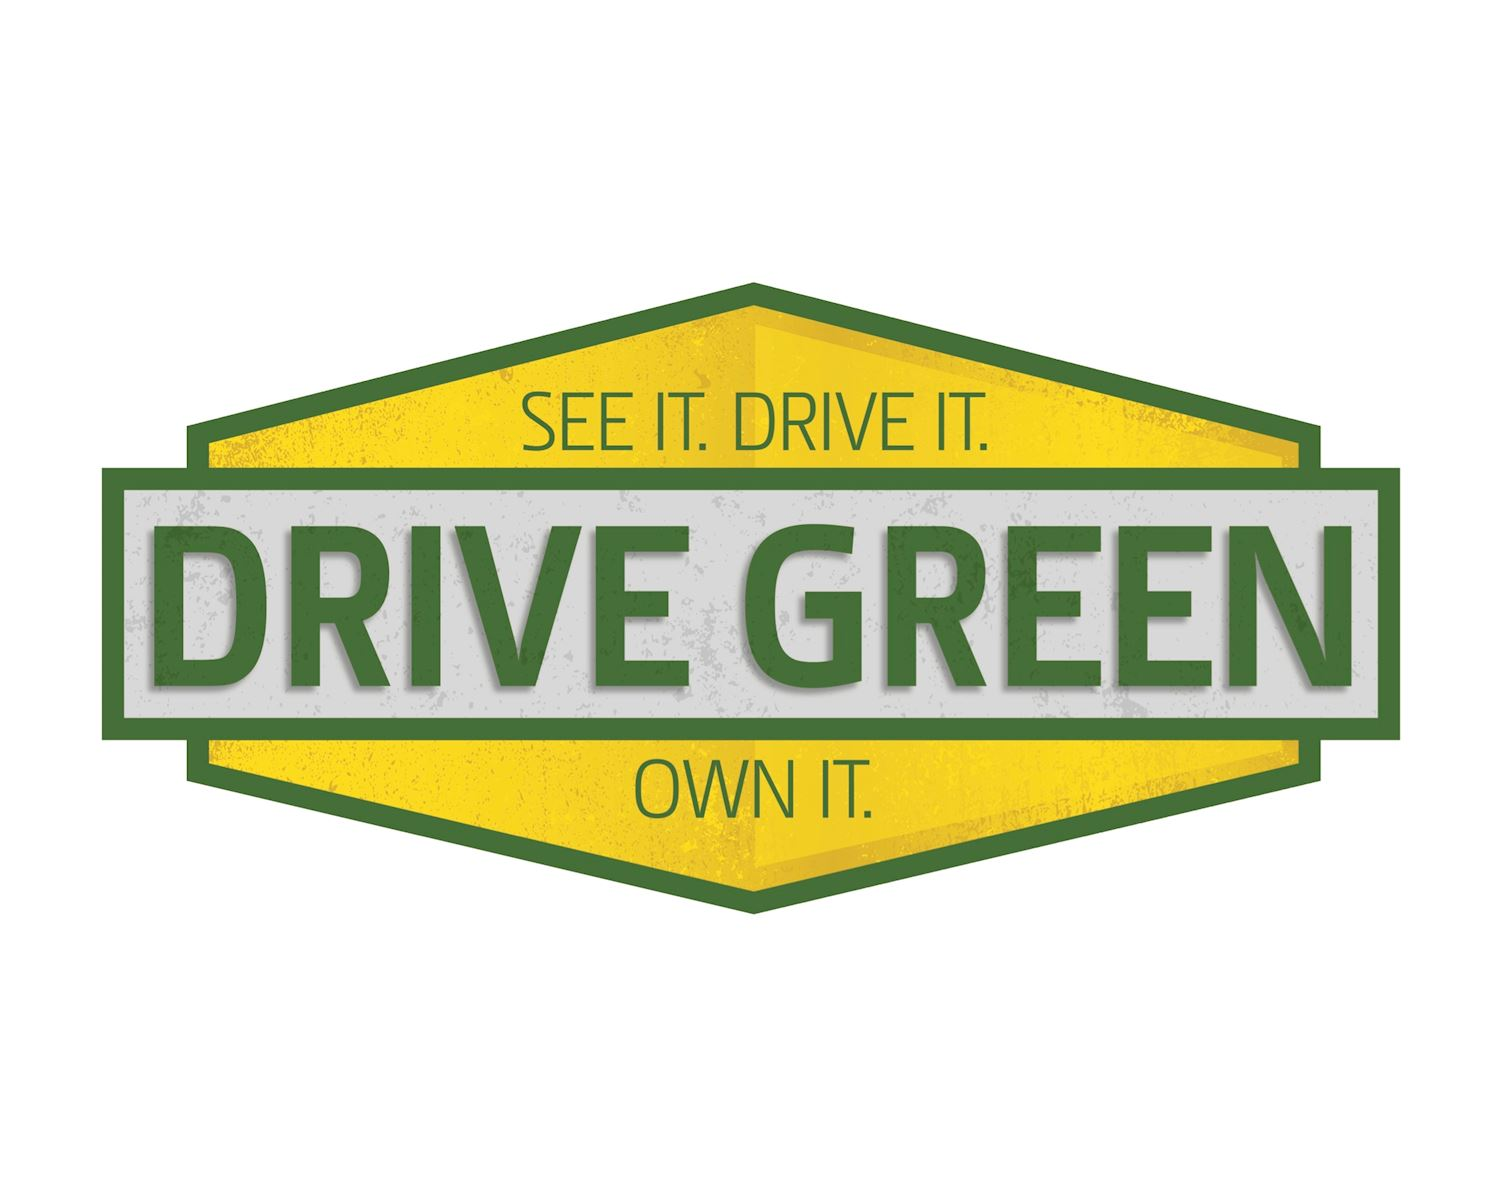 drive-green-event